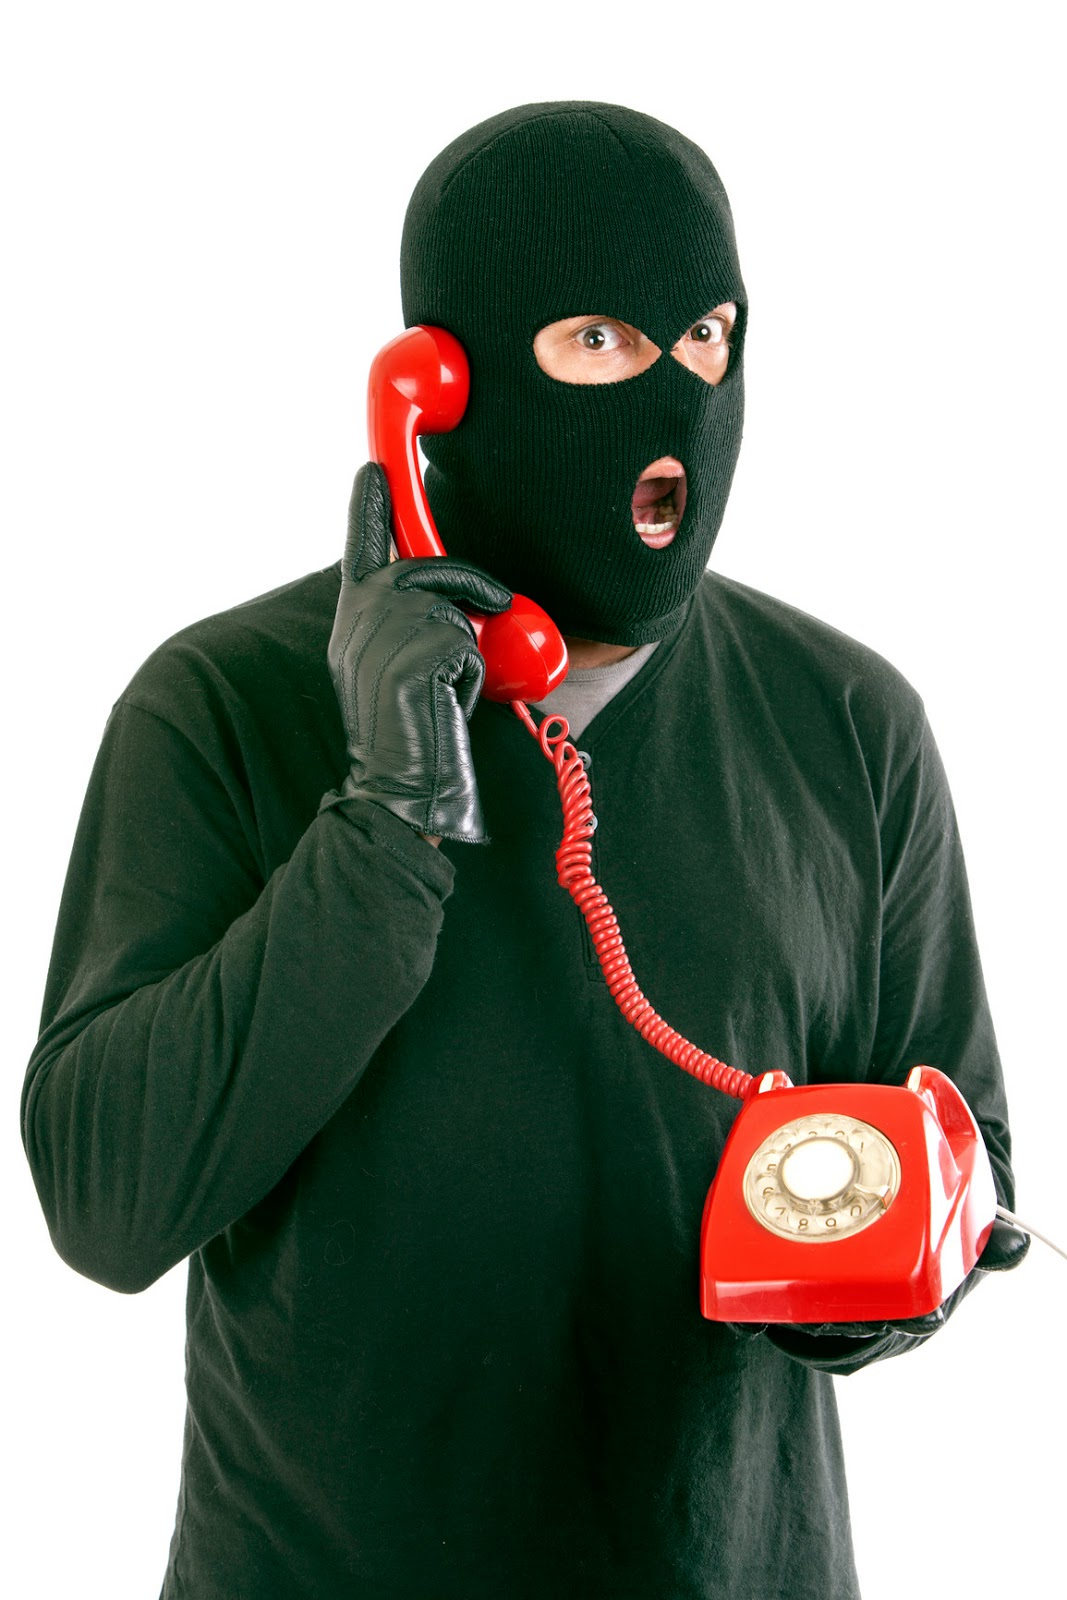 Scammers social engineer phone scam